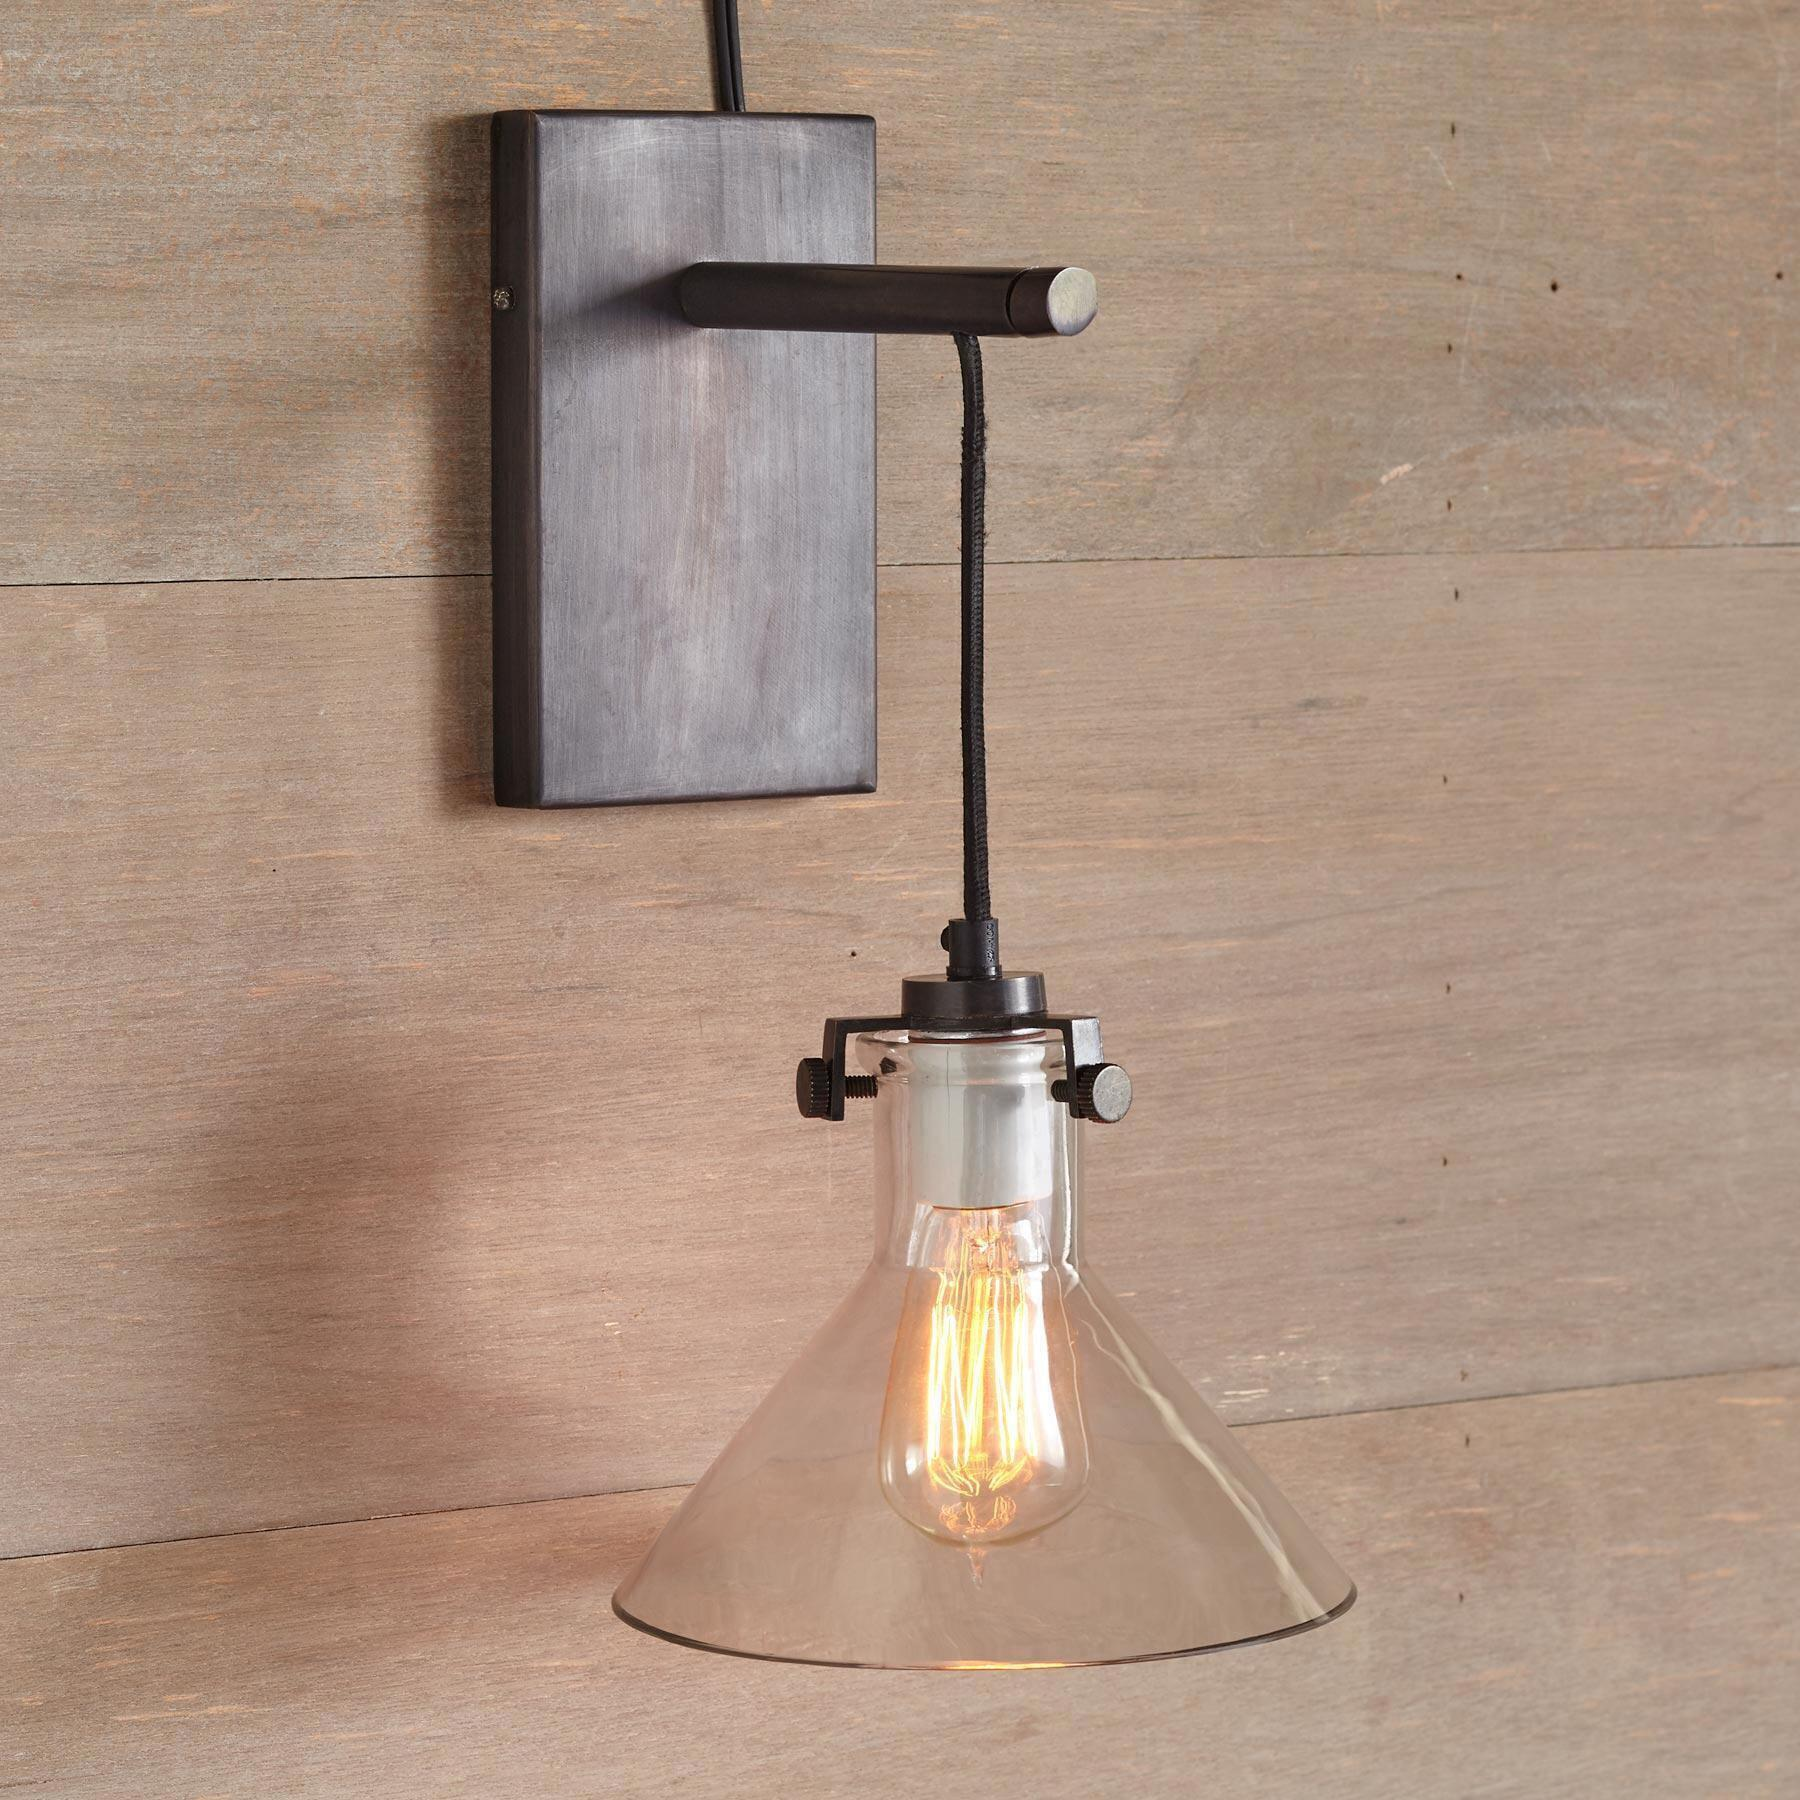 MERIDIAN SCONCE PENDANT LIGHT: View 2